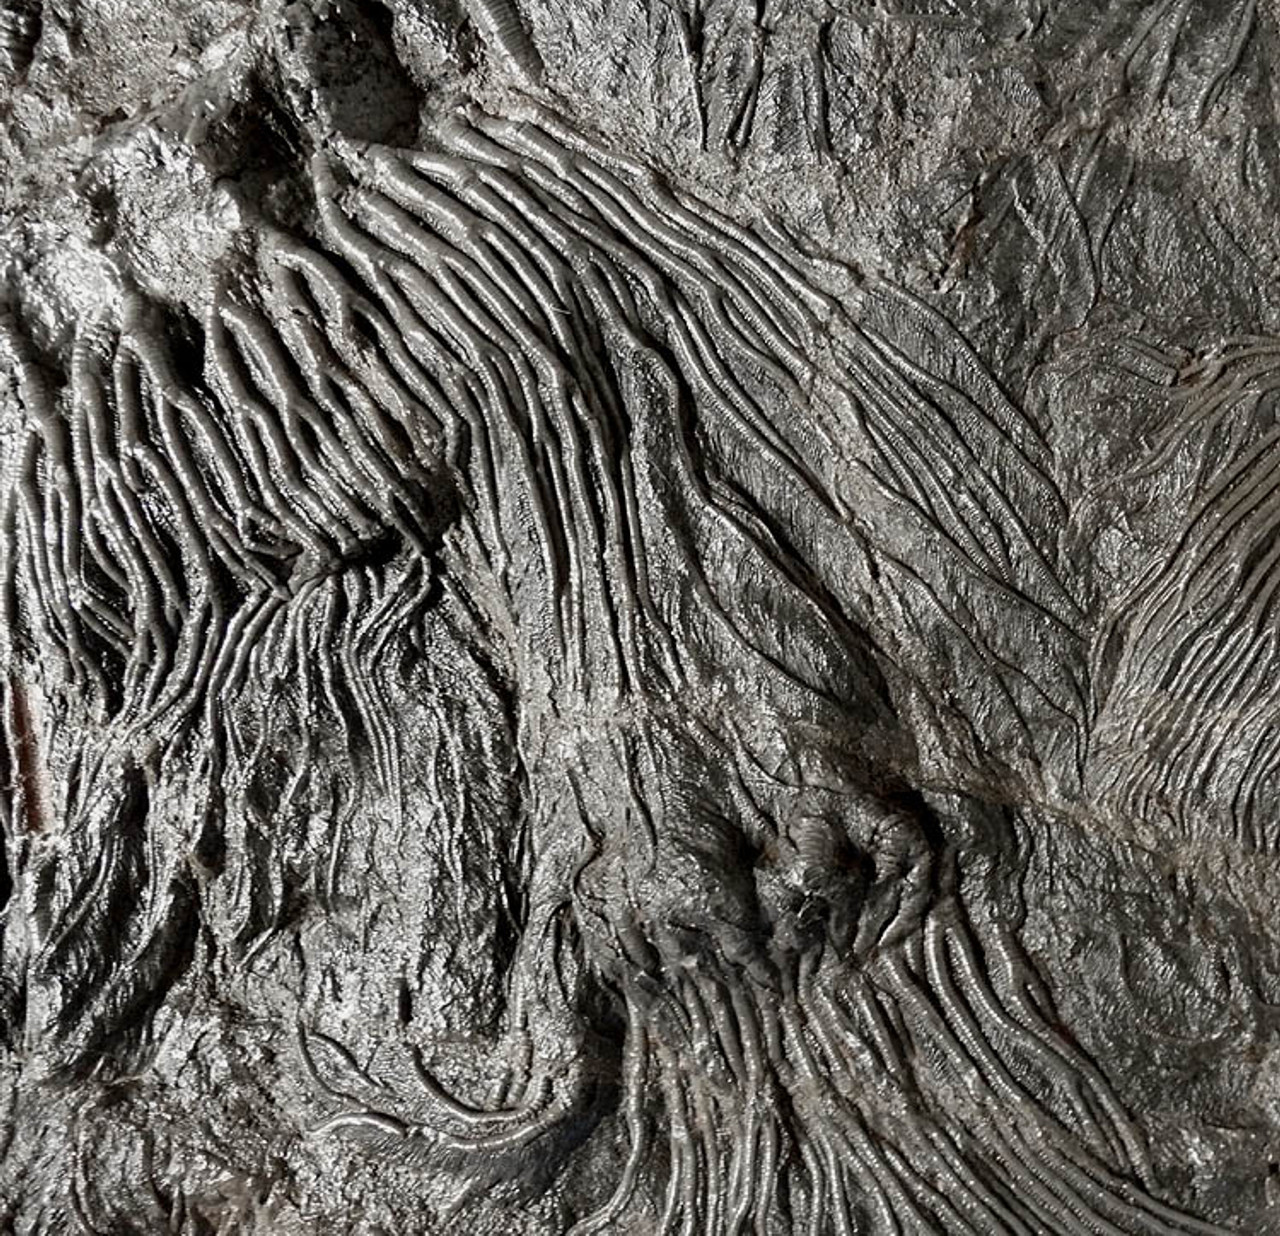 LARGE INTERIOR DESIGN ACCENT FOSSIL GIANT SEA LILY CRINOIDS ON A PREHISTORIC OCEAN FLOOR *CRI001